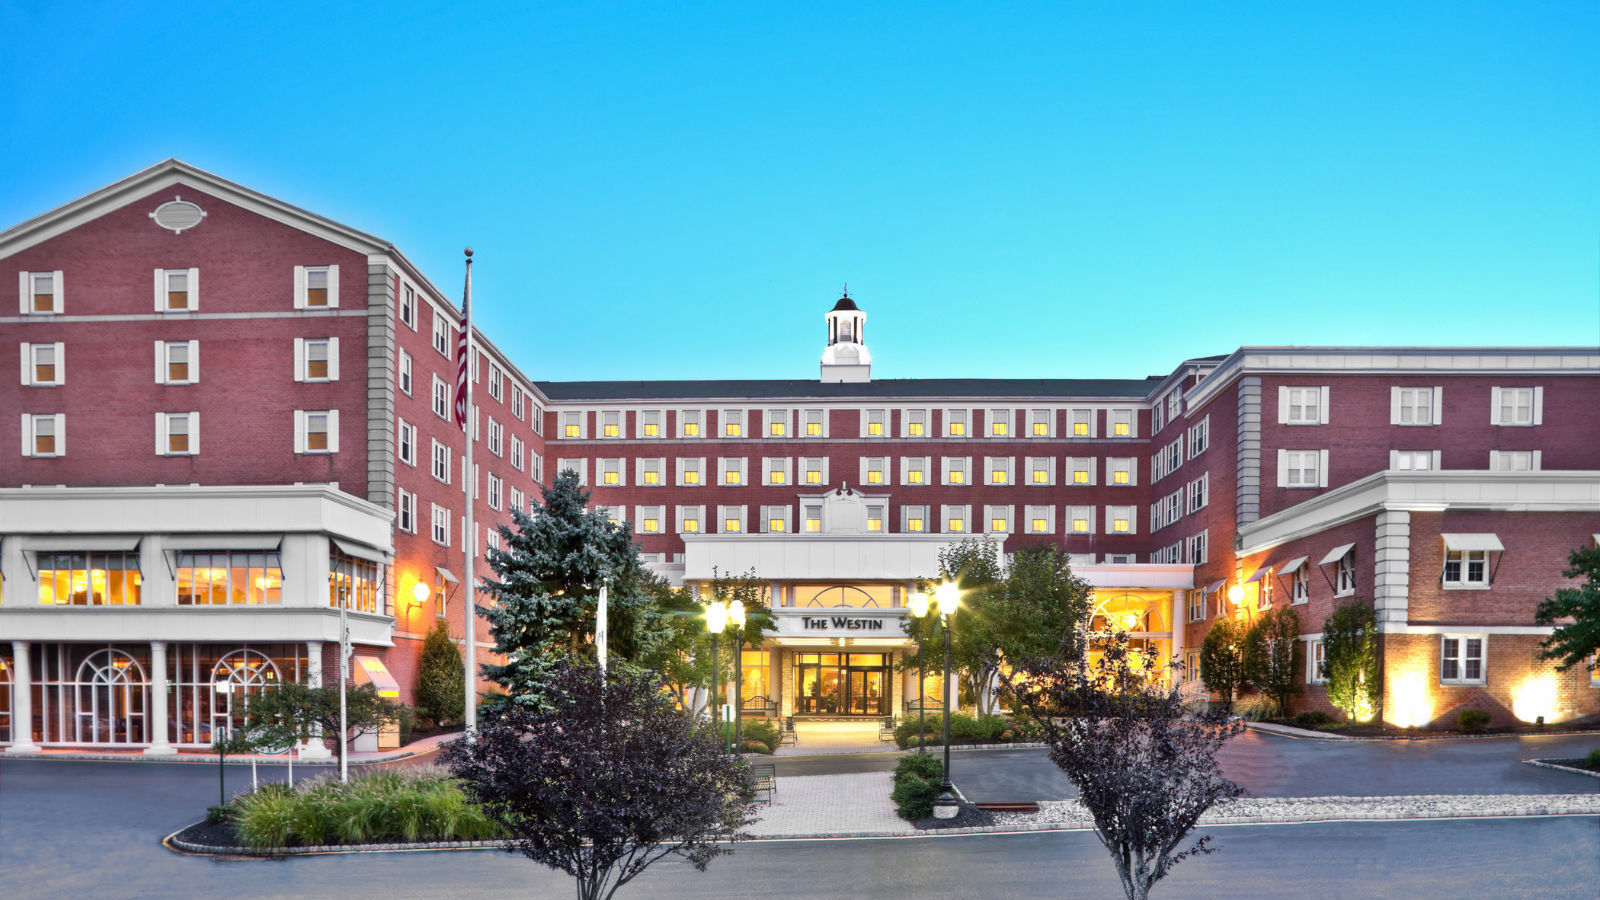 The Westin Governor Morris, Morristown - Exterior